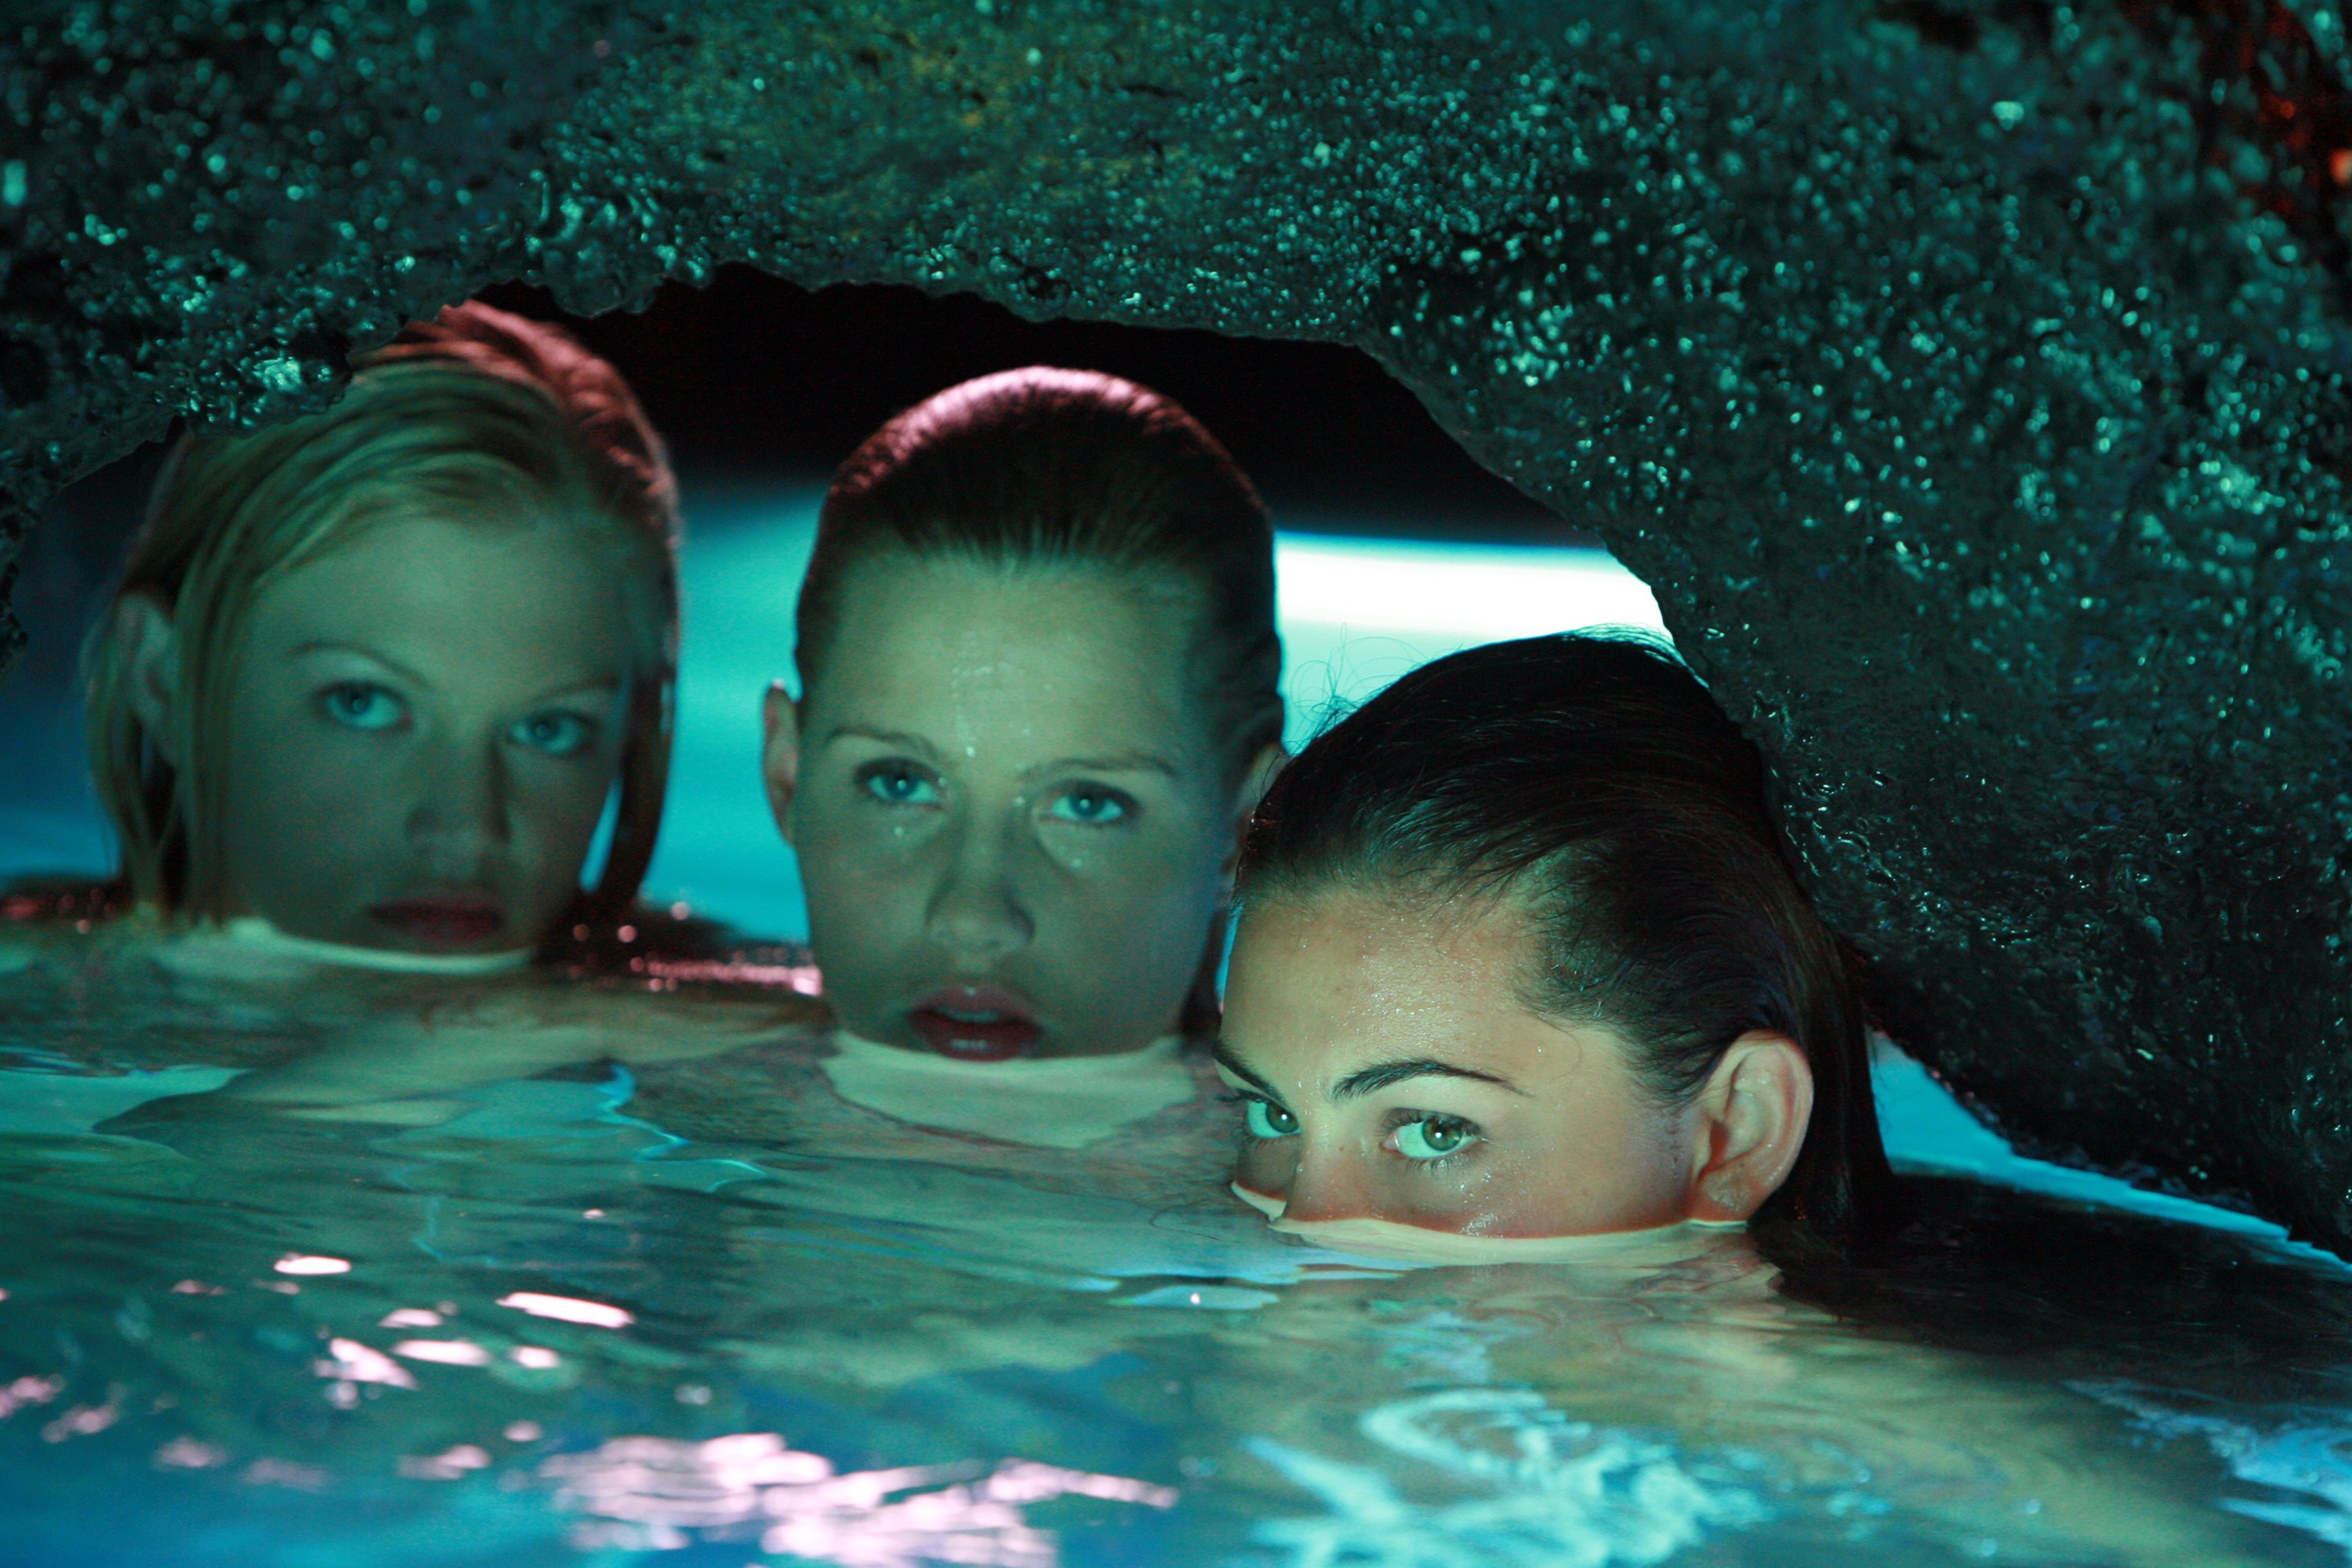 Image rikki emma and cleo hiding in h2o for H2o just add water 3